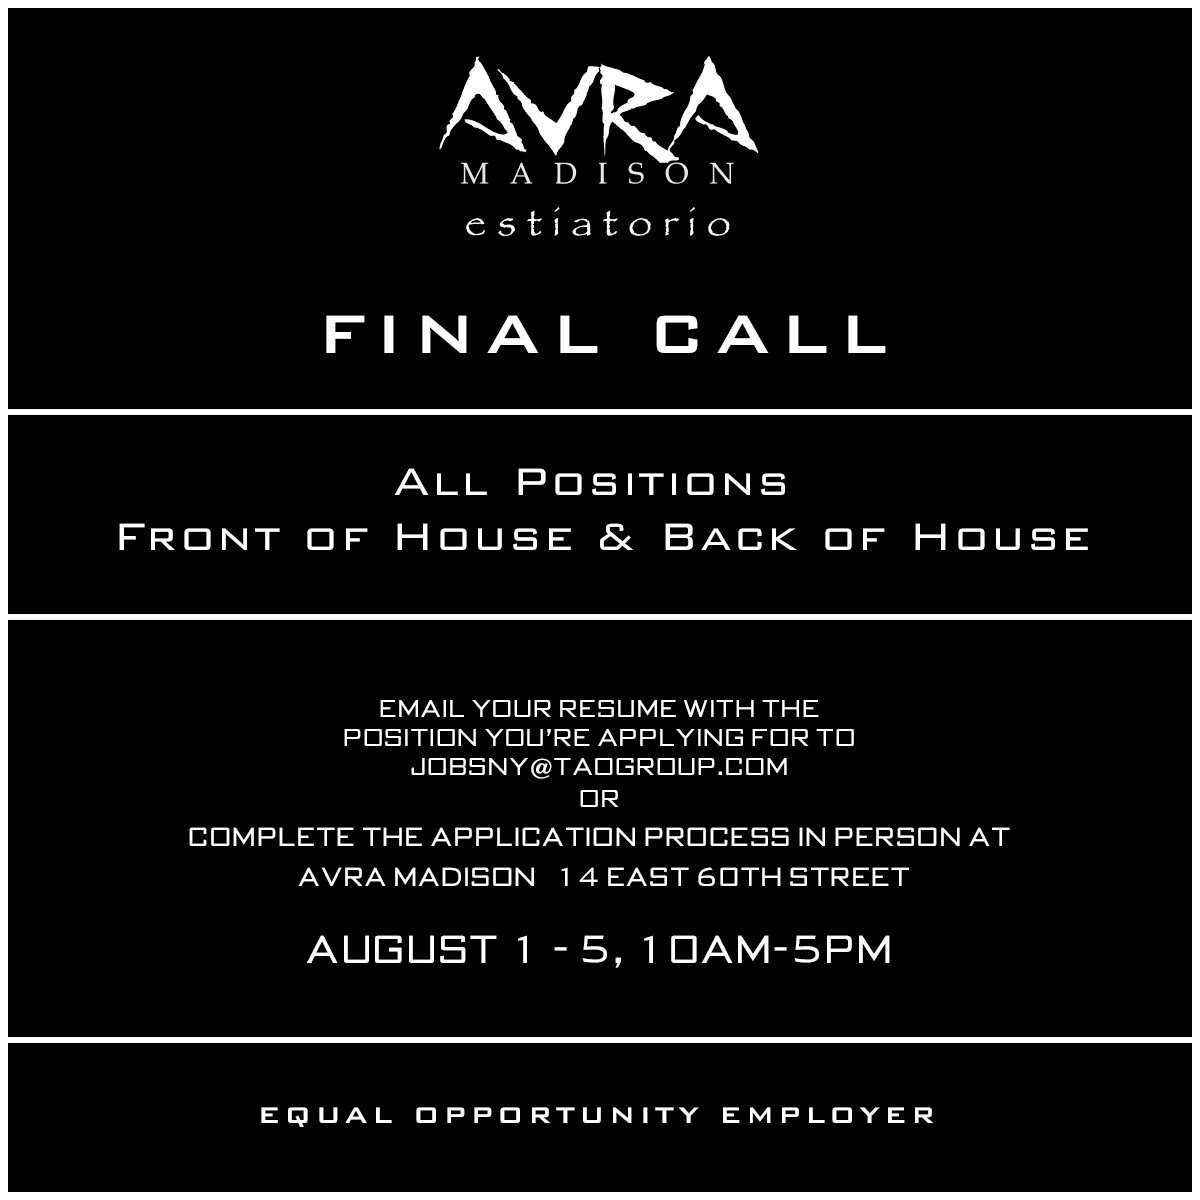 Final call to join @TAOGroup for the opening of @Avranyc Madison! All positions welcome! https://t.co/xBHYtBjdaG